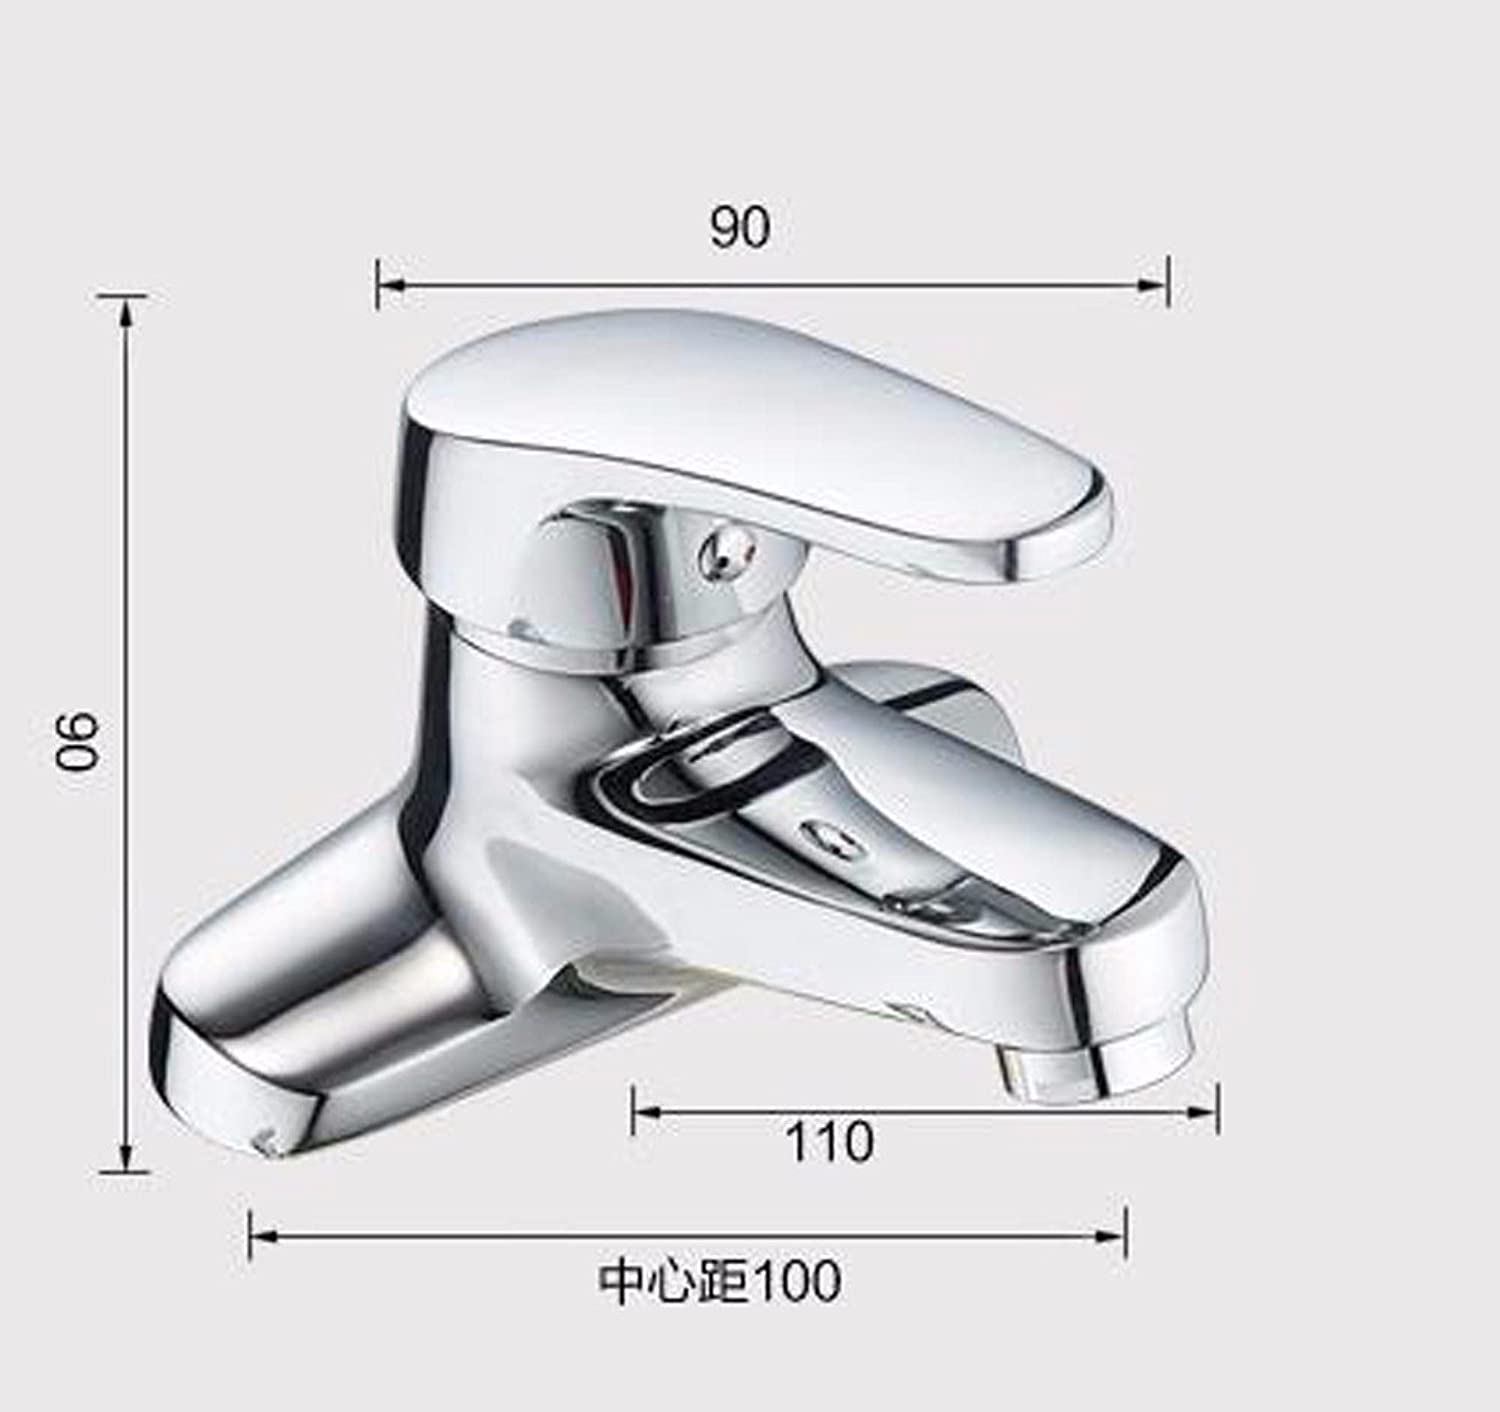 LHbox Basin Mixer Tap Bathroom Sink Faucet The brass body 2 holes basin mixer to turn the cold water faucet single handle three hole basin basin mixer,